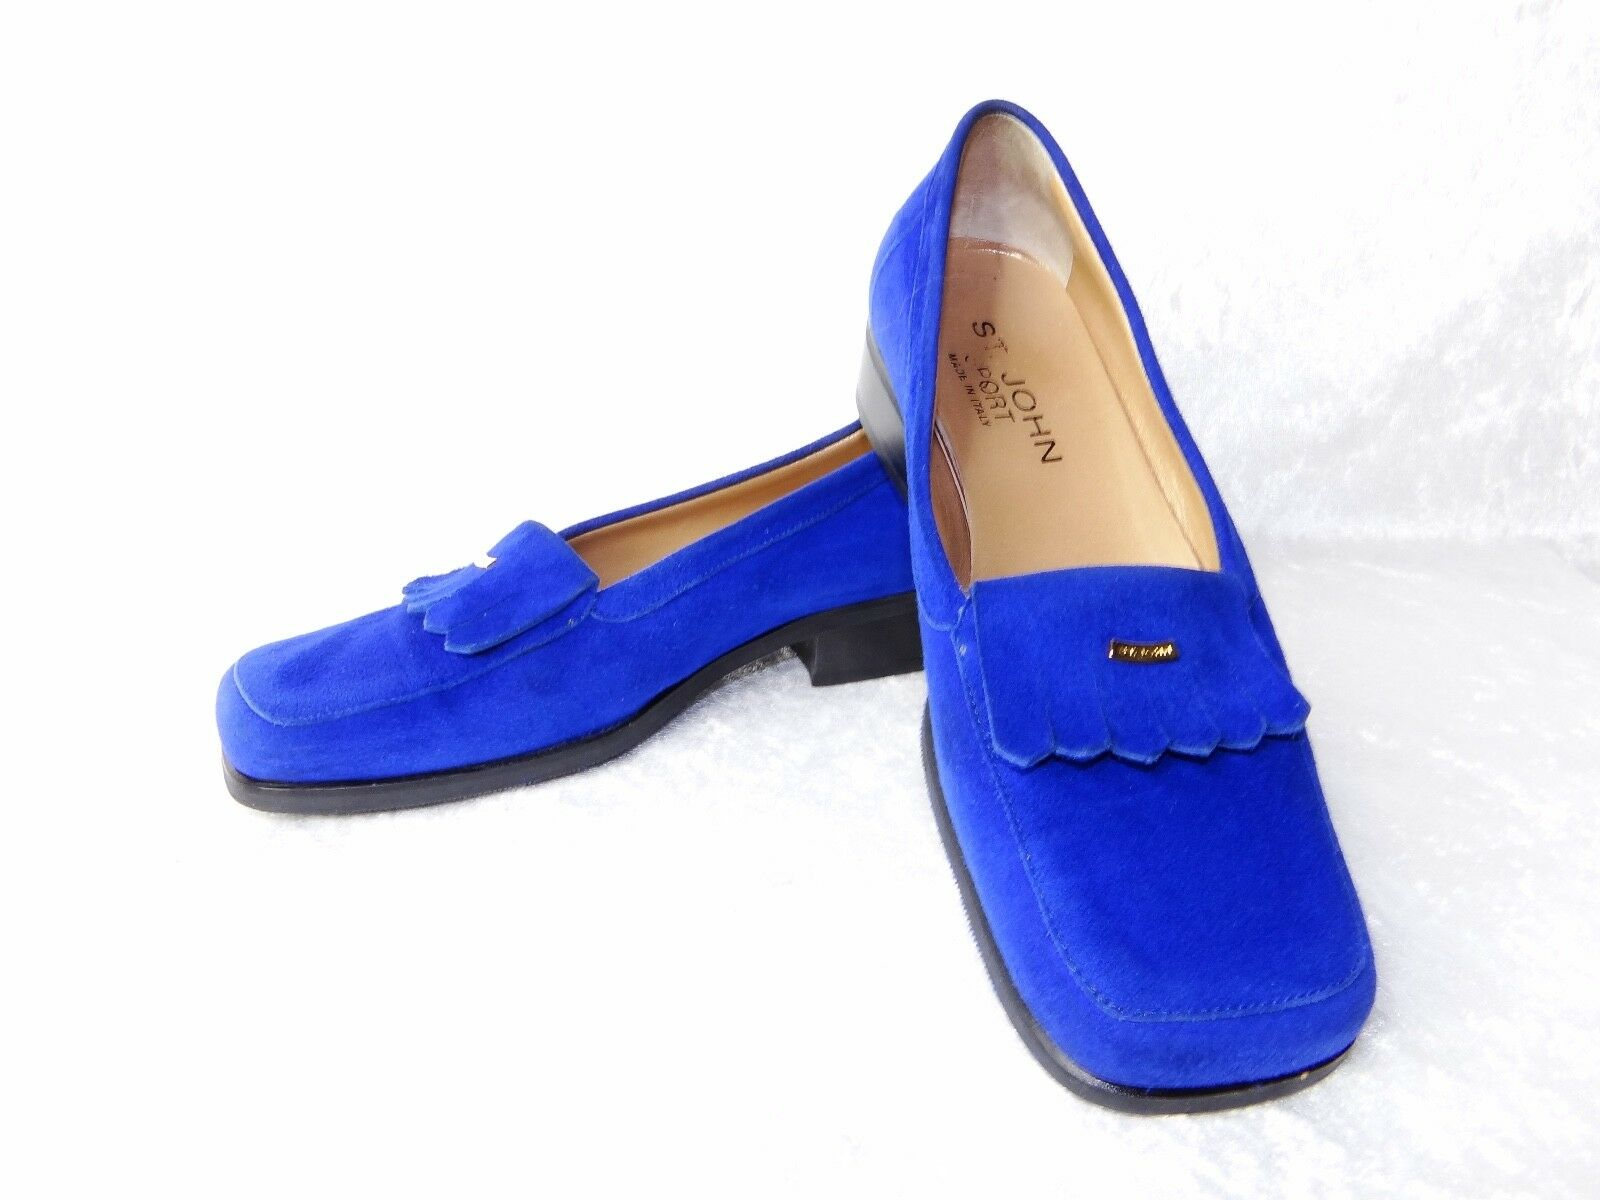 St John Sport Designer Womens Loafers 6.5 Vibram Sole Royal Blue Made in Italy